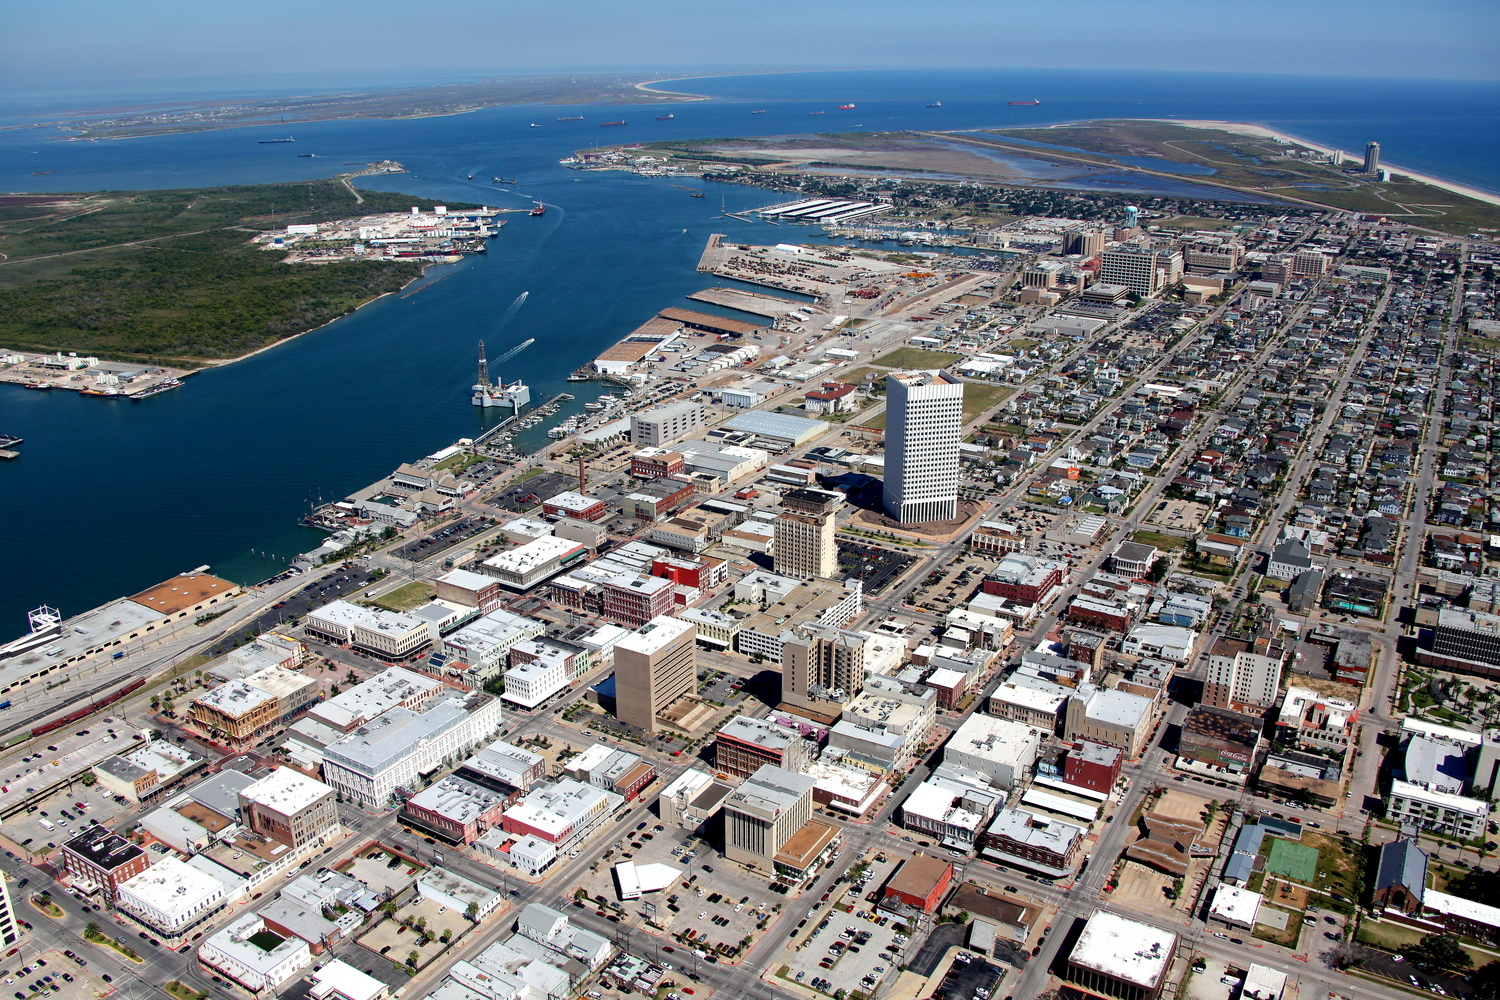 Downtown CBD, Galveston, Texas - Galveston Aerial Photographer - Aerial Drone Image - Aerial Drone Video - Galveston, TX